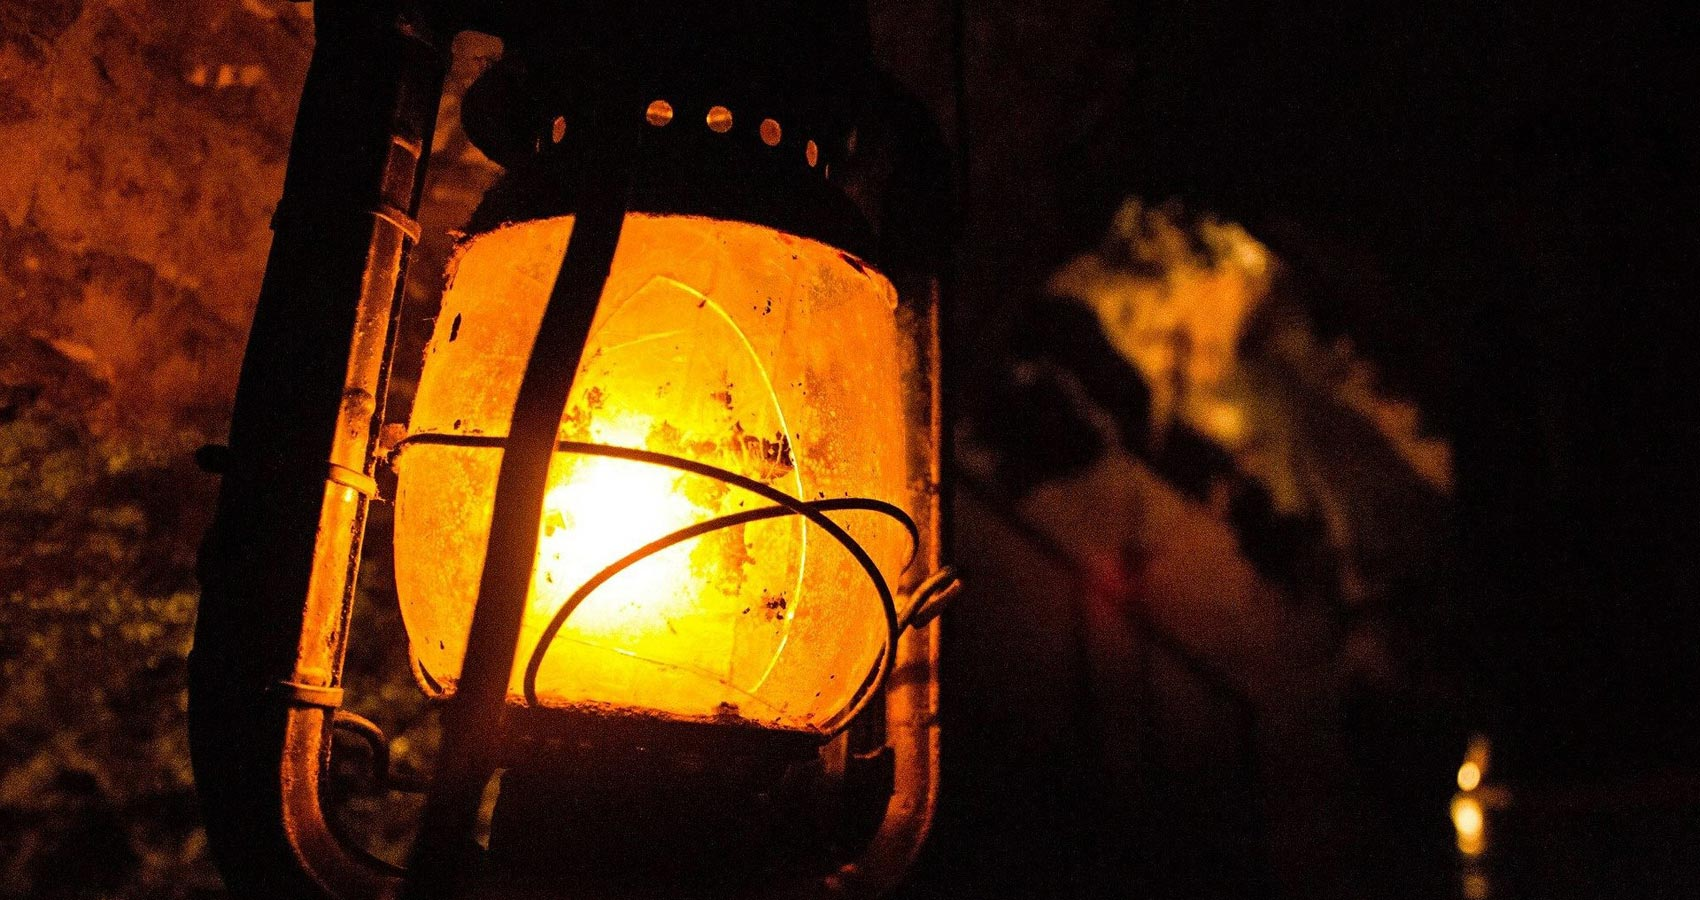 The Lamp, a poem written by Charlie Bottle at Spillwords.com